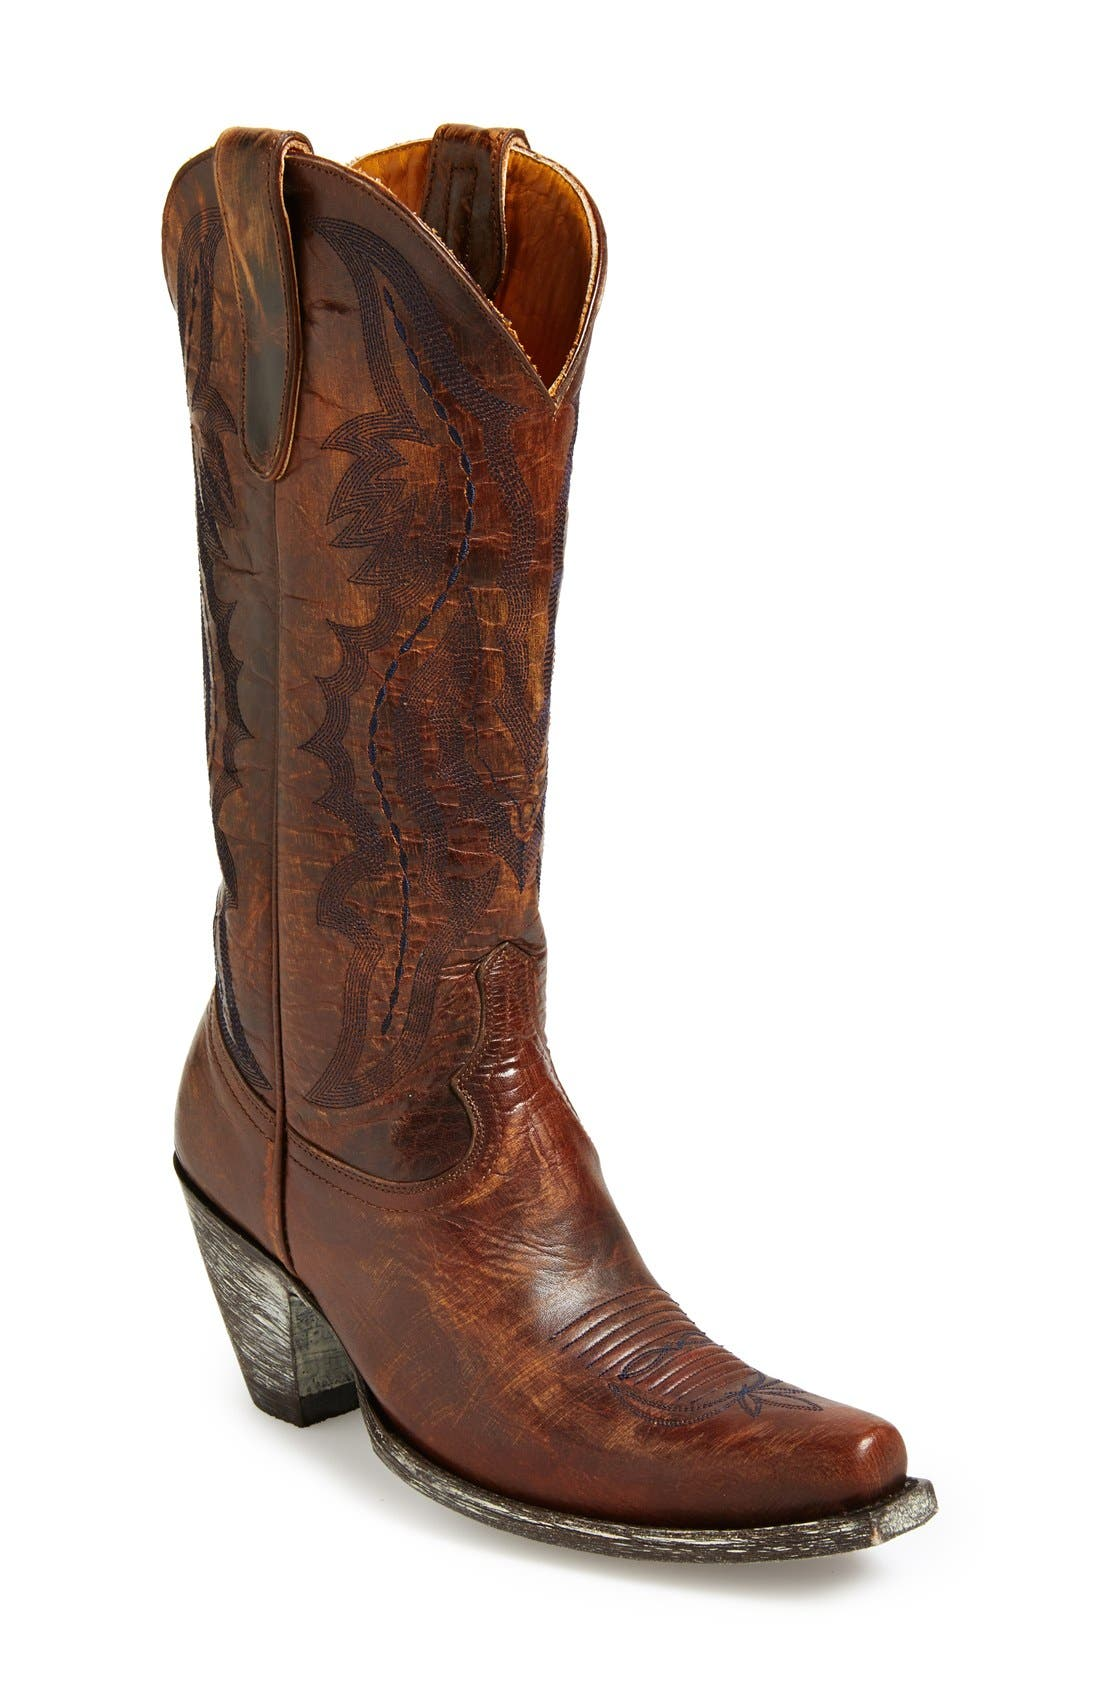 Alternate Image 1 Selected - Old Gringo 'Rio' Leather Western Boot (Women)